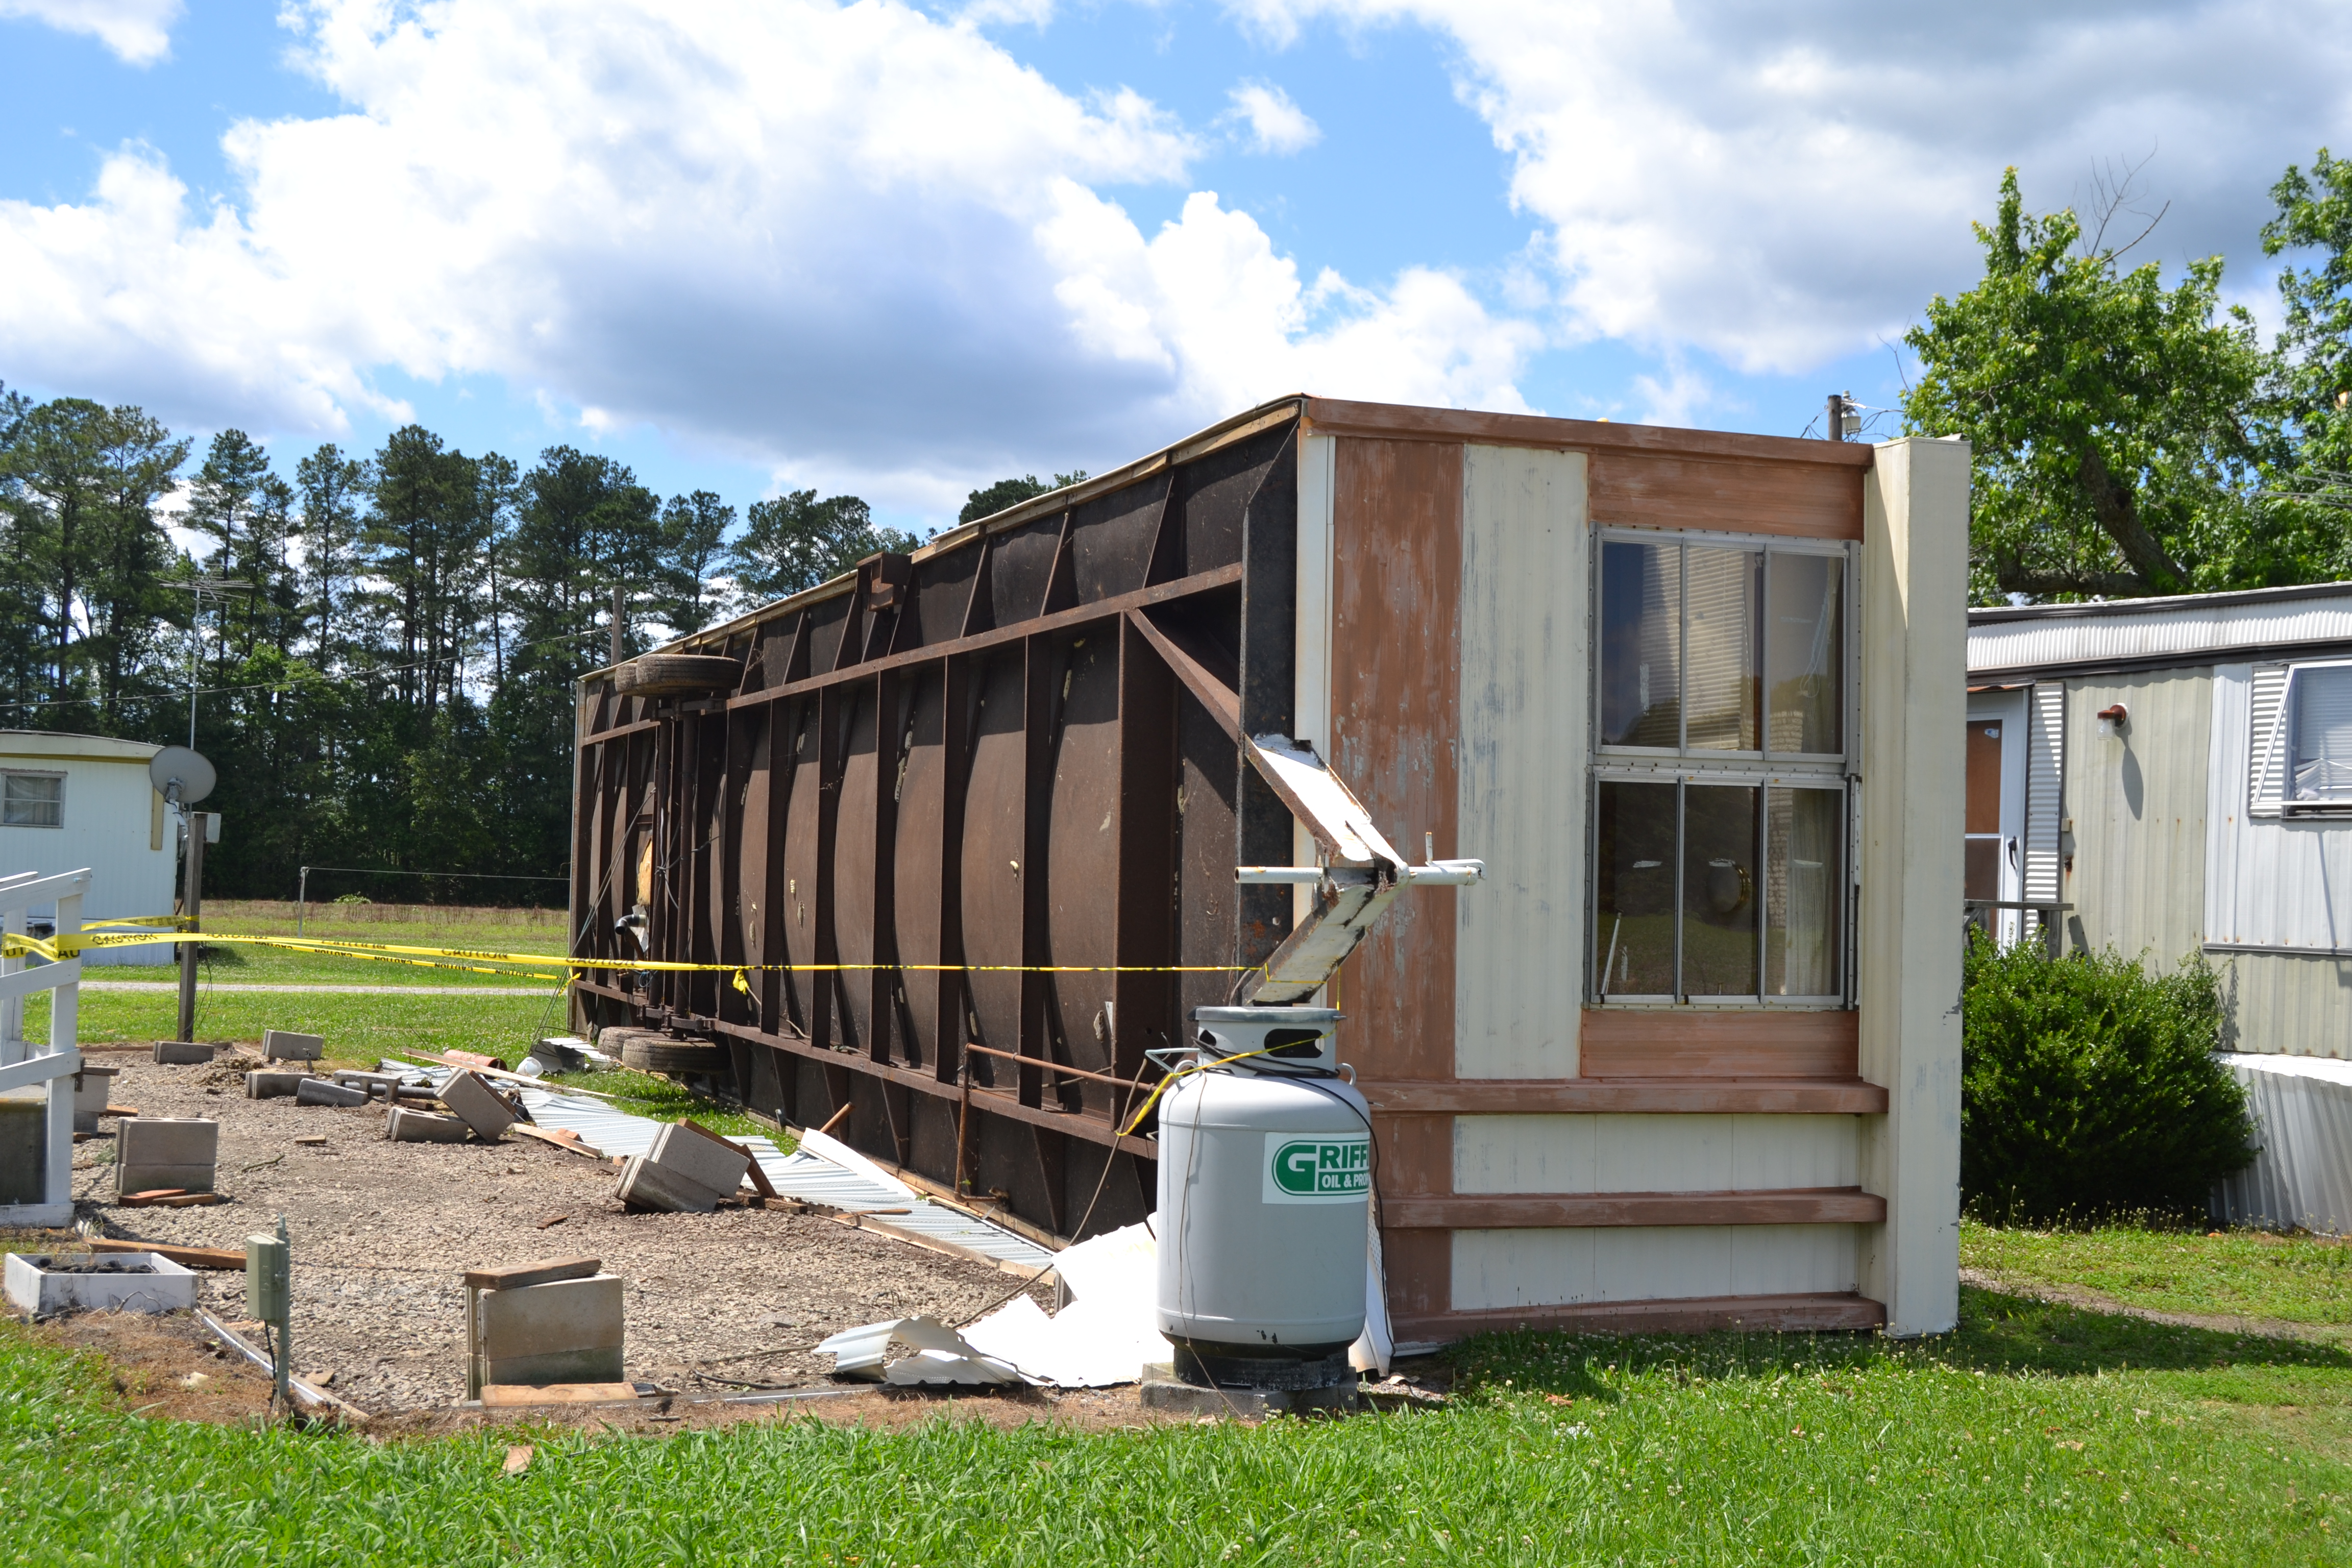 Portable Trailer Homes : Overturned mobile home these days of mine